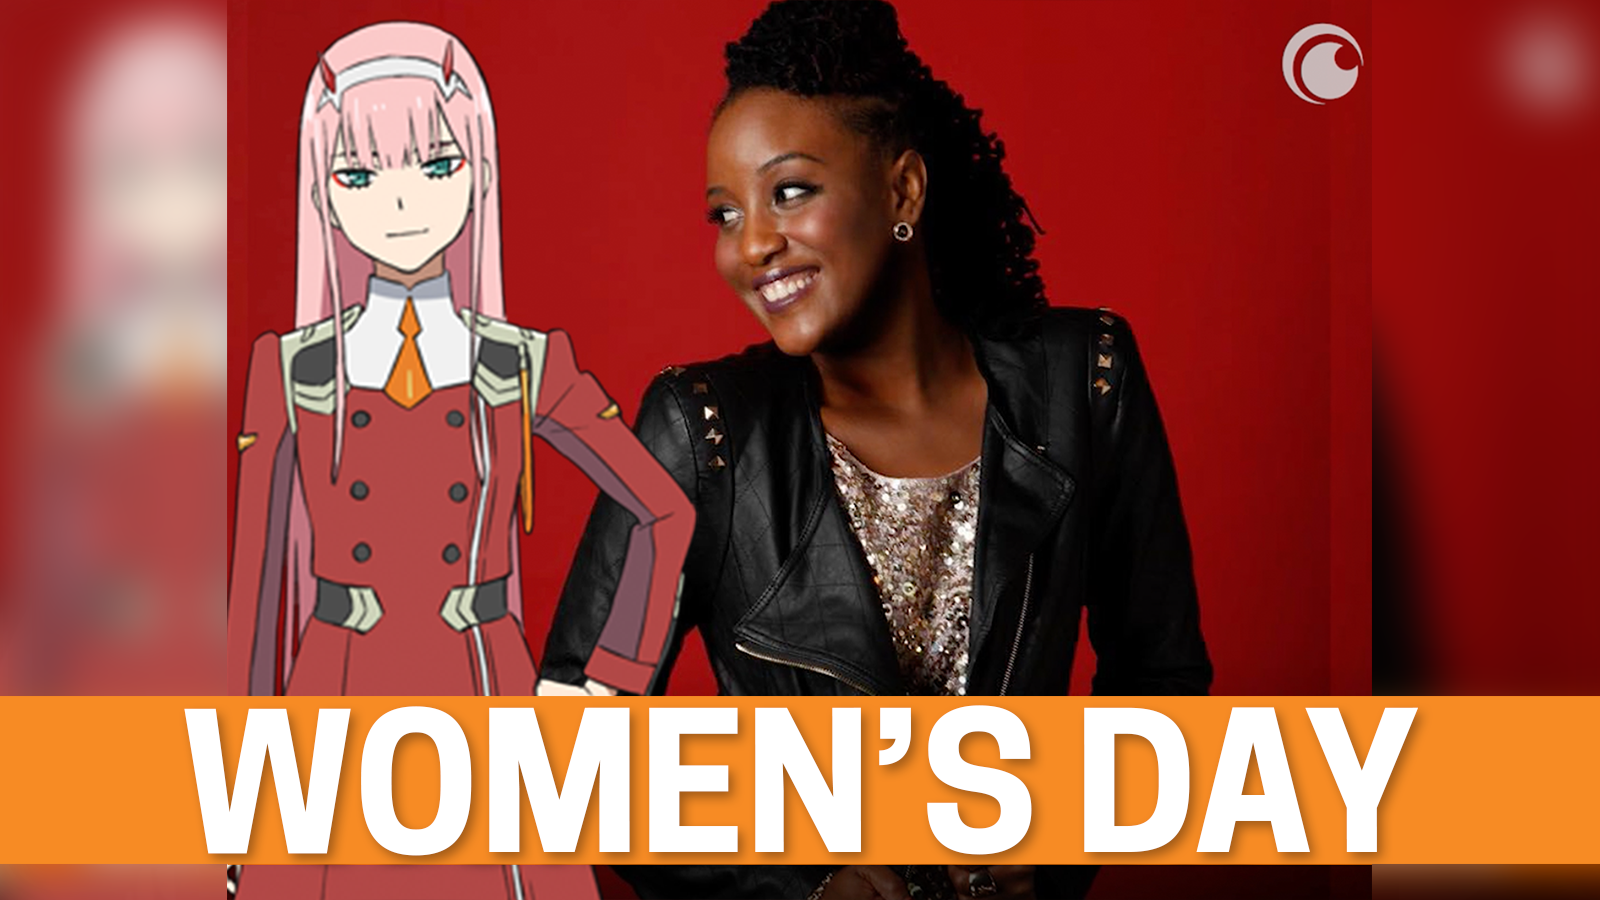 Happy International Women's Day!! Here's some women in anime who inspire us ✨ https://t.co/Vx42fQgviK